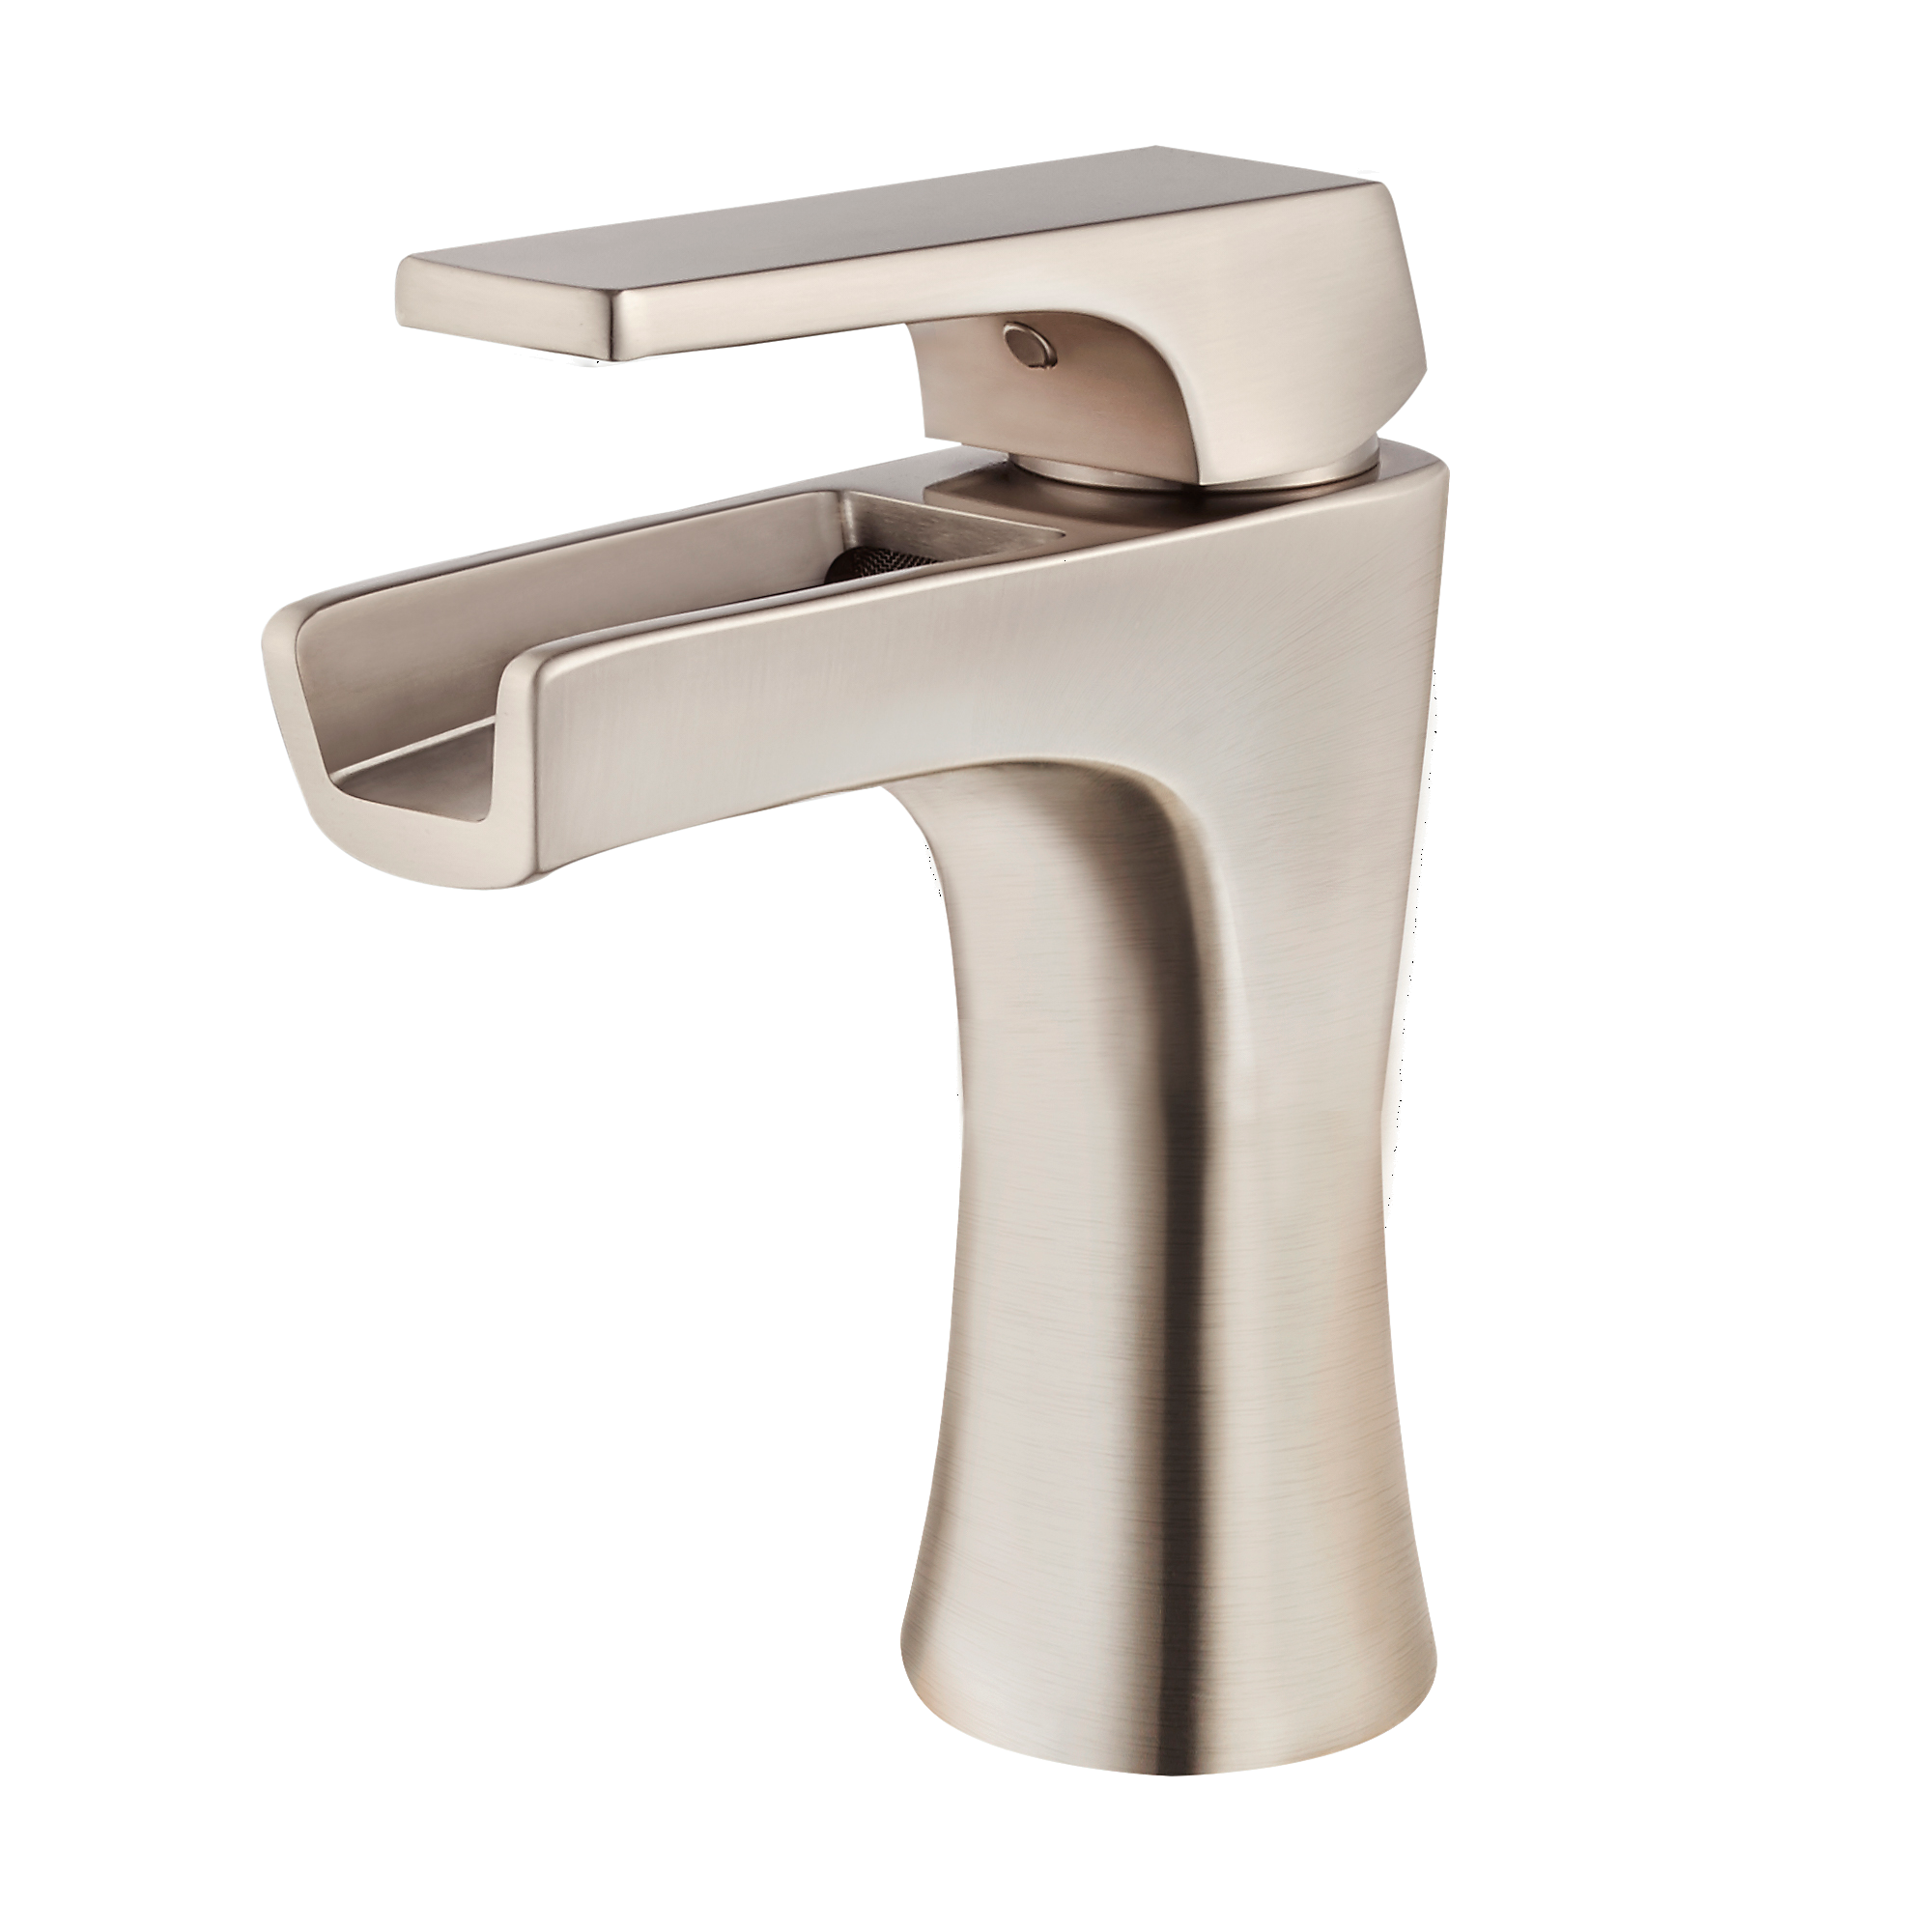 Pfister - Kelen Single Control Bathroom Faucet in Polished Chrome